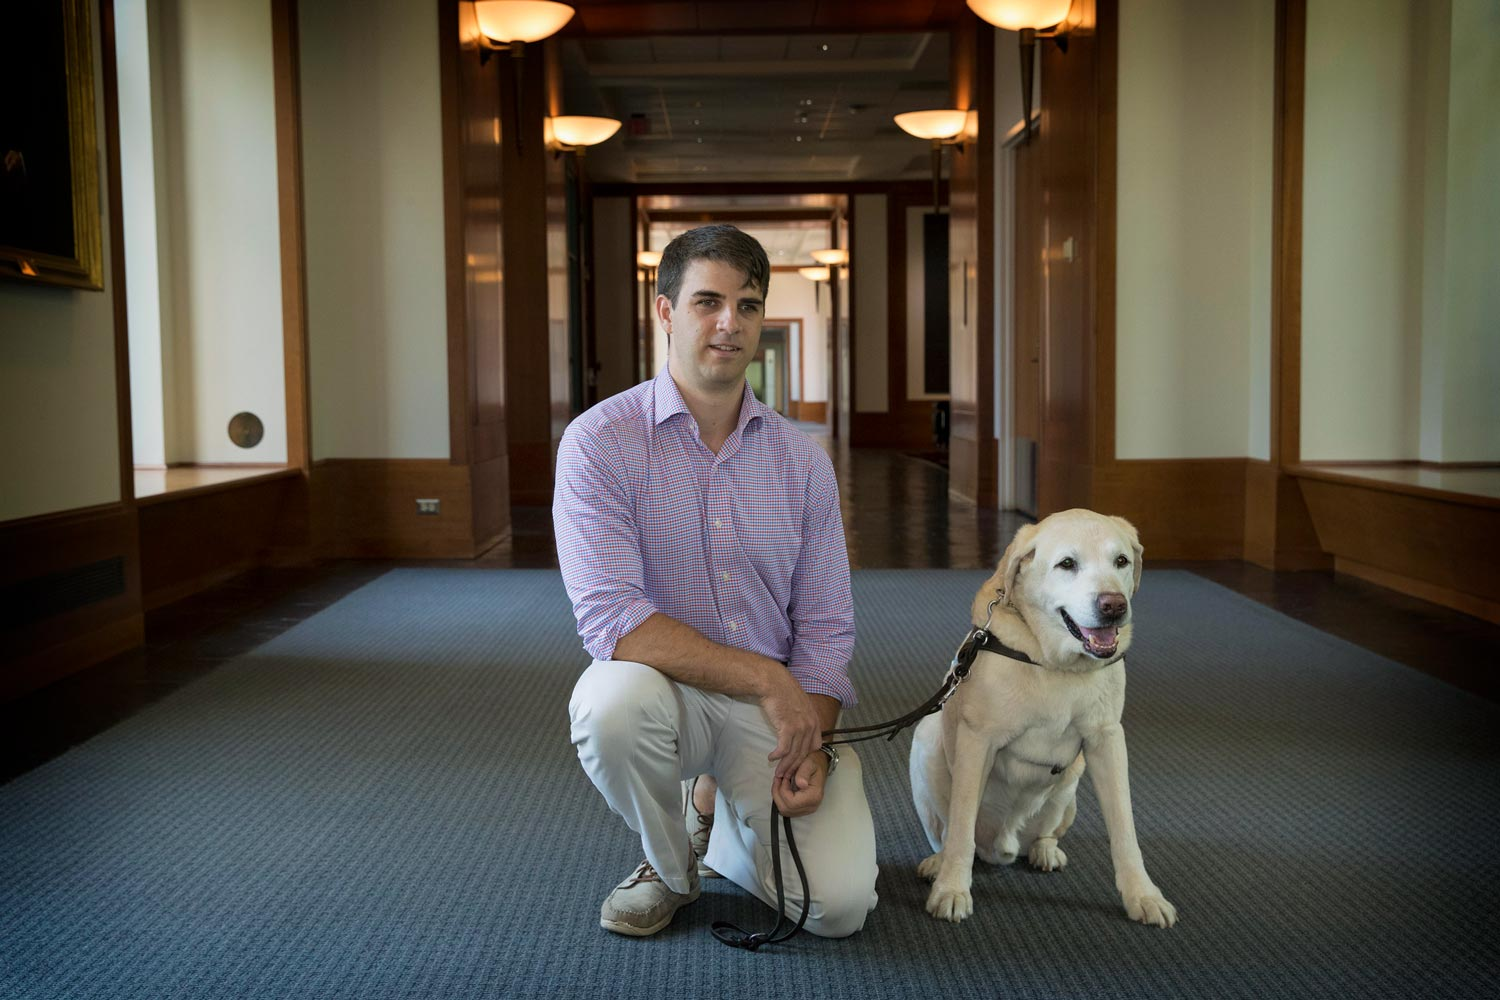 Simpson (pictured with his guide dog, Lacrosse) hopes to become an advocate for the blind after he graduates.